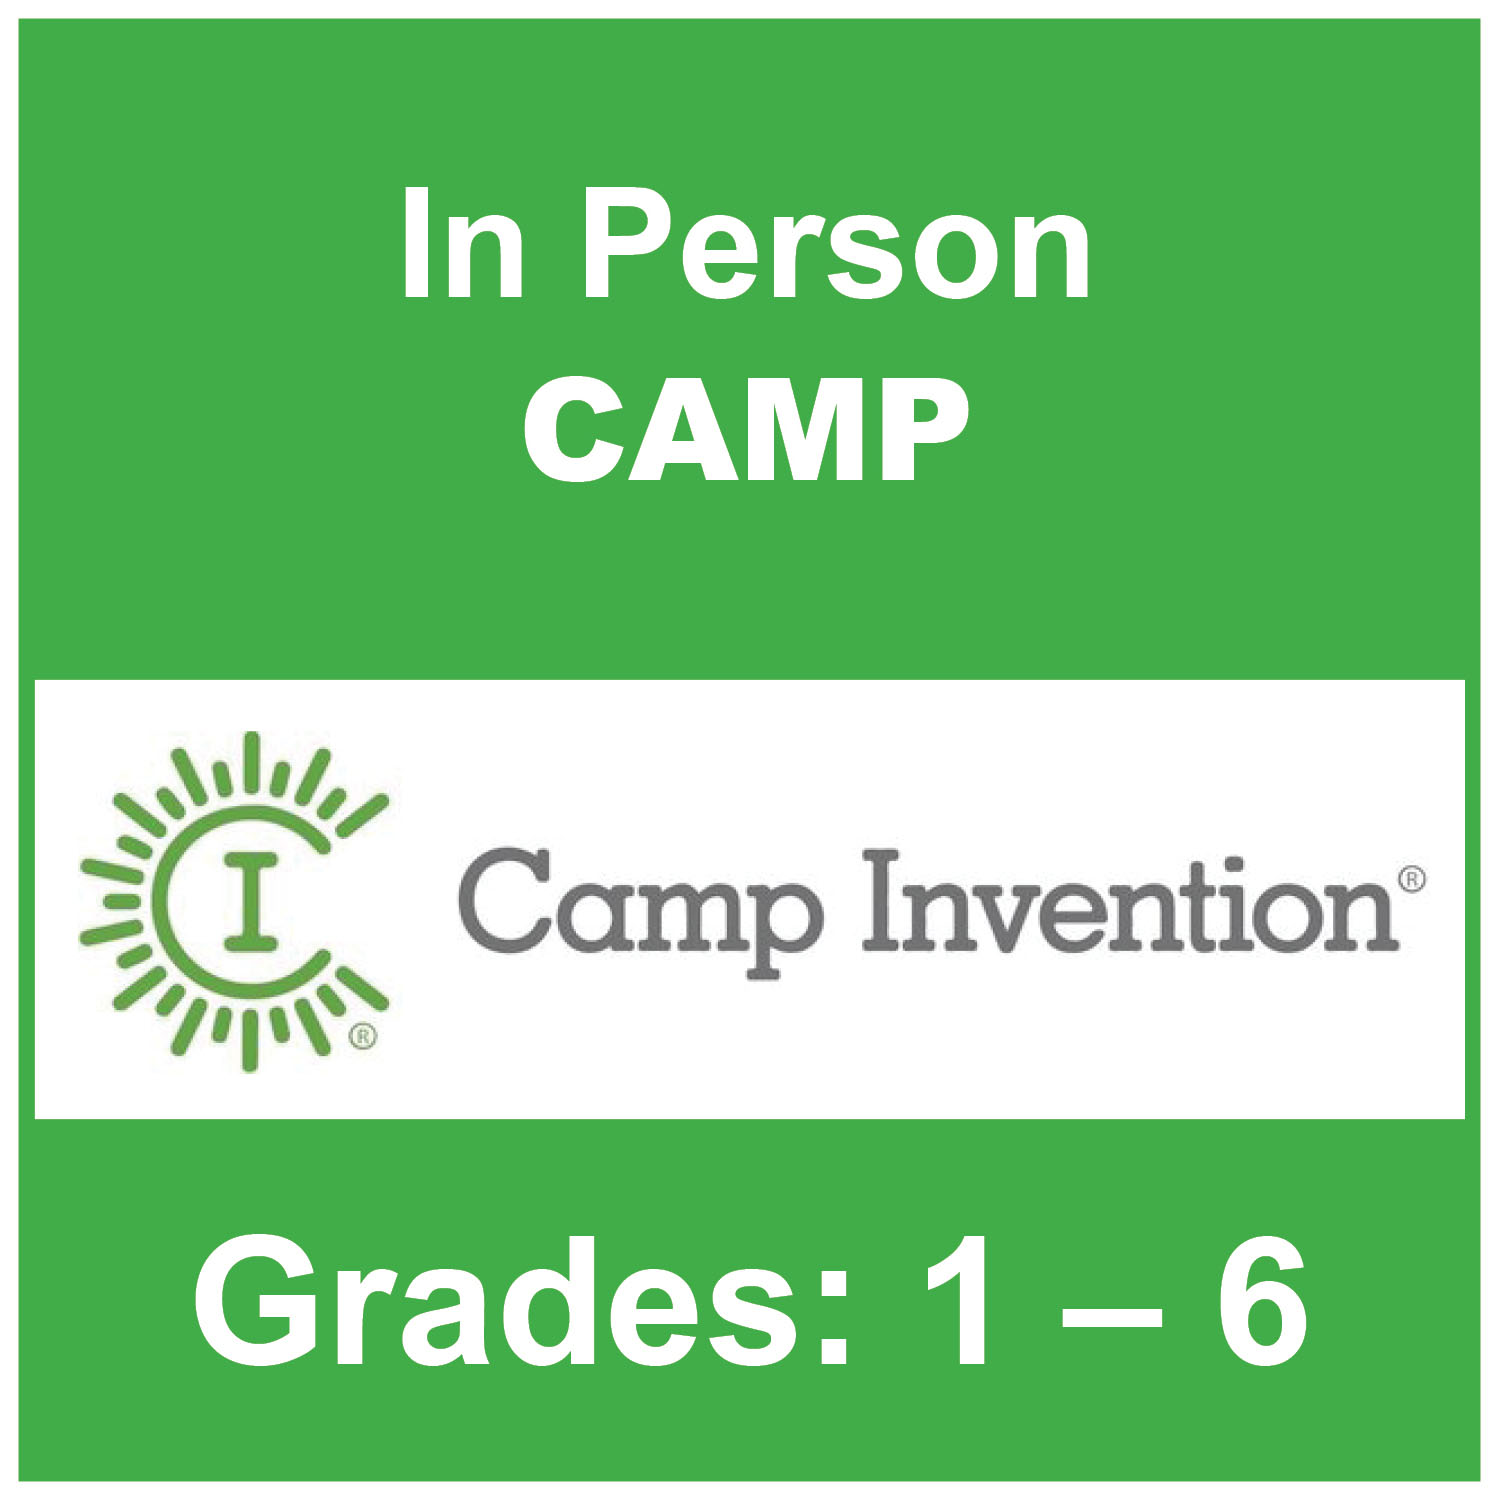 Camp Invention 2021 Information Link